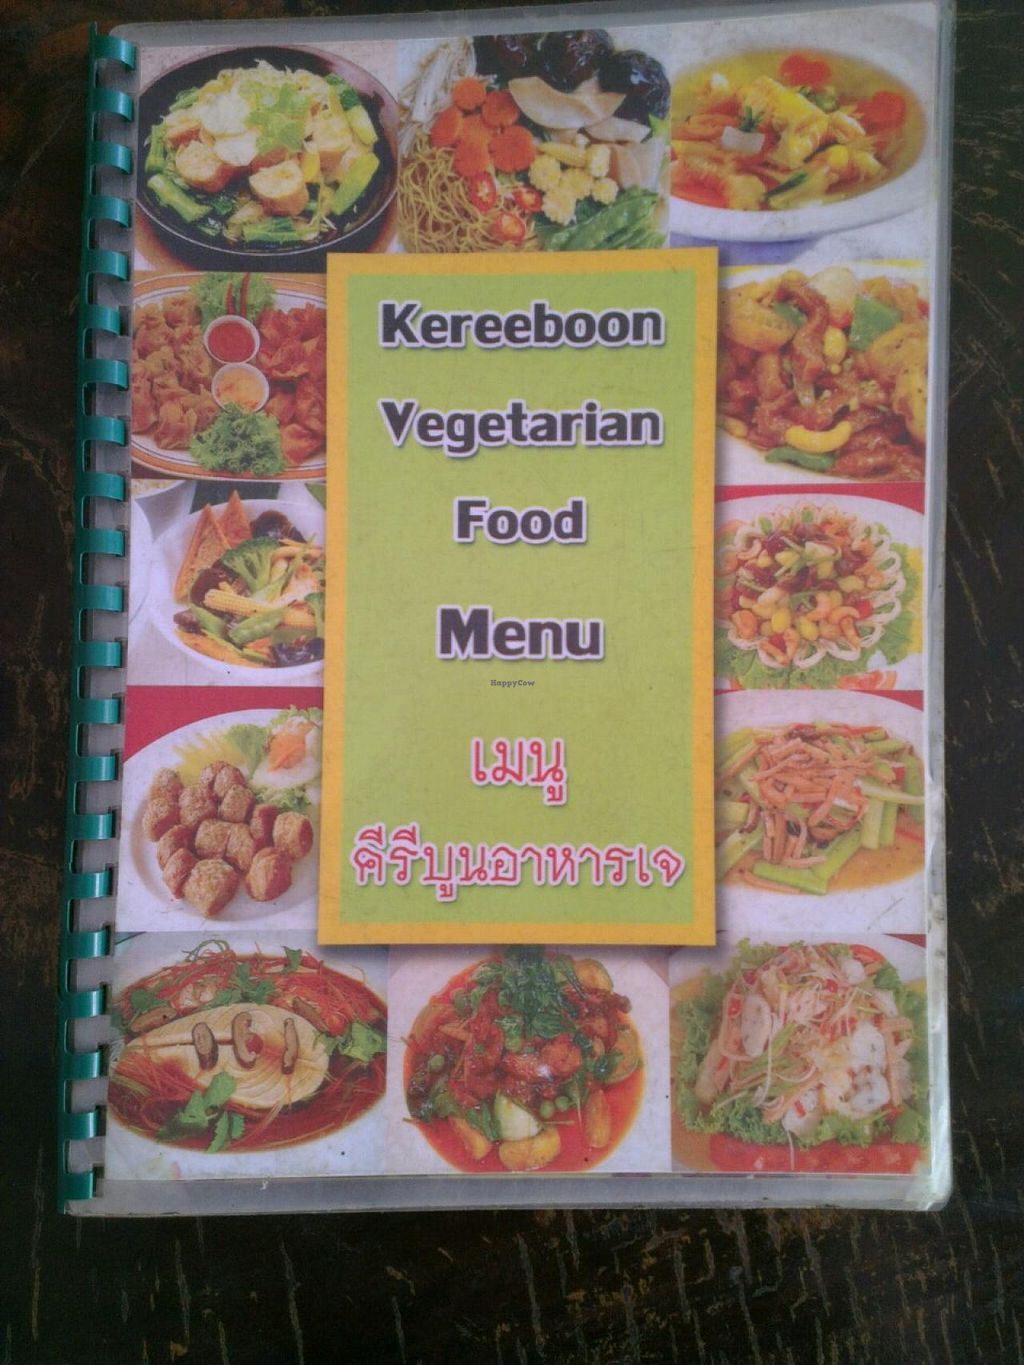 """Photo of CLOSED: Keereboon Vegetarian Food  by <a href=""""/members/profile/jeroenkusters"""">jeroenkusters</a> <br/>Thai and English menu <br/> January 22, 2015  - <a href='/contact/abuse/image/54802/91047'>Report</a>"""